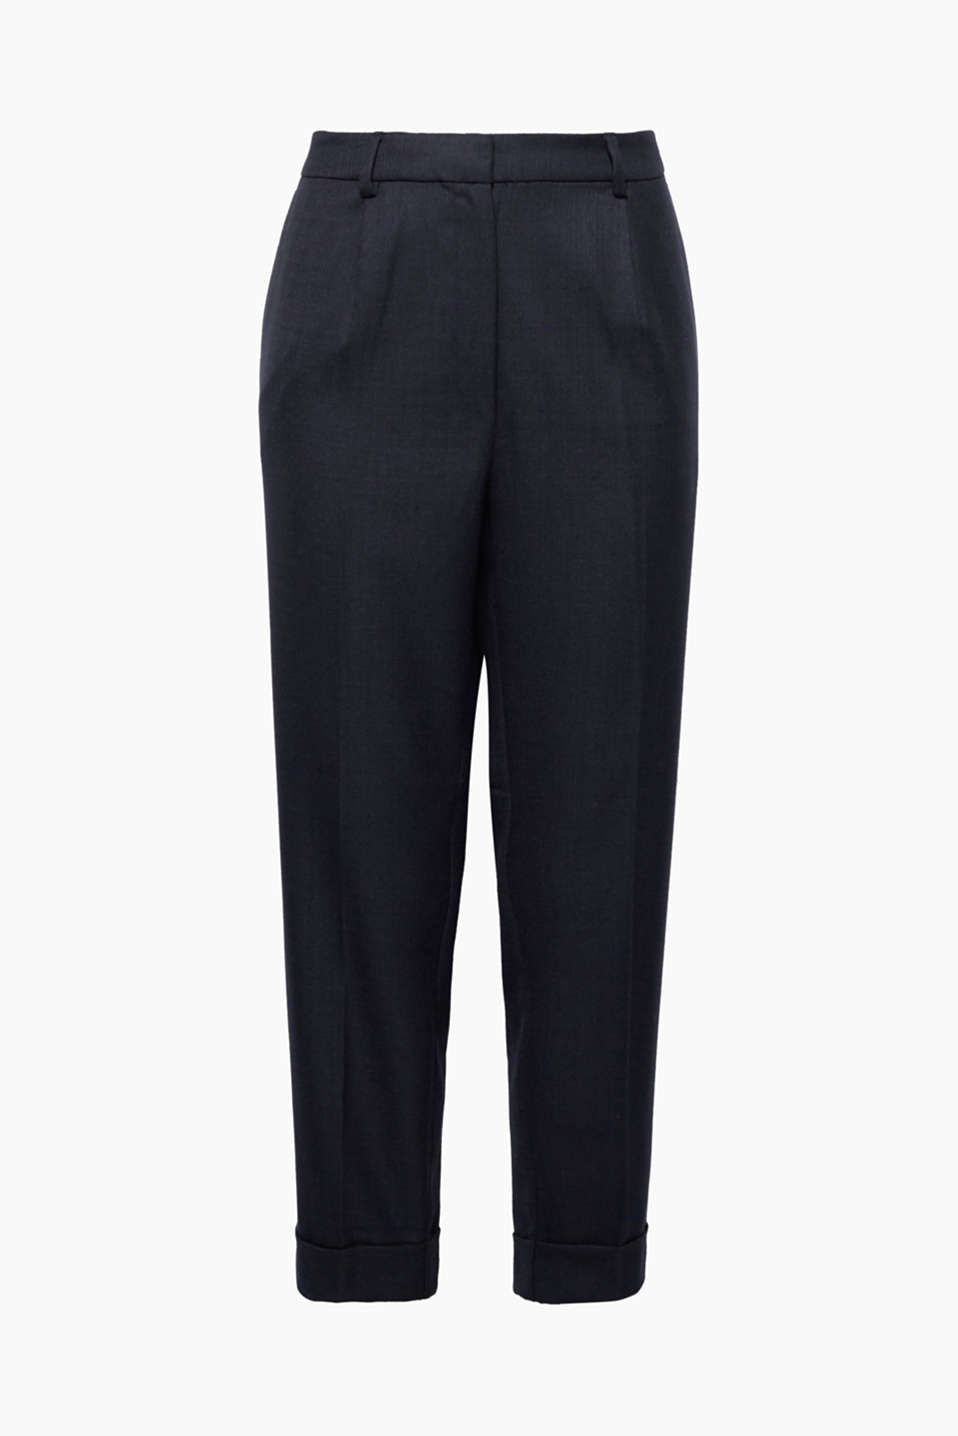 The fine texture of these woven trousers perfectly highlights their smart style and modern cut!